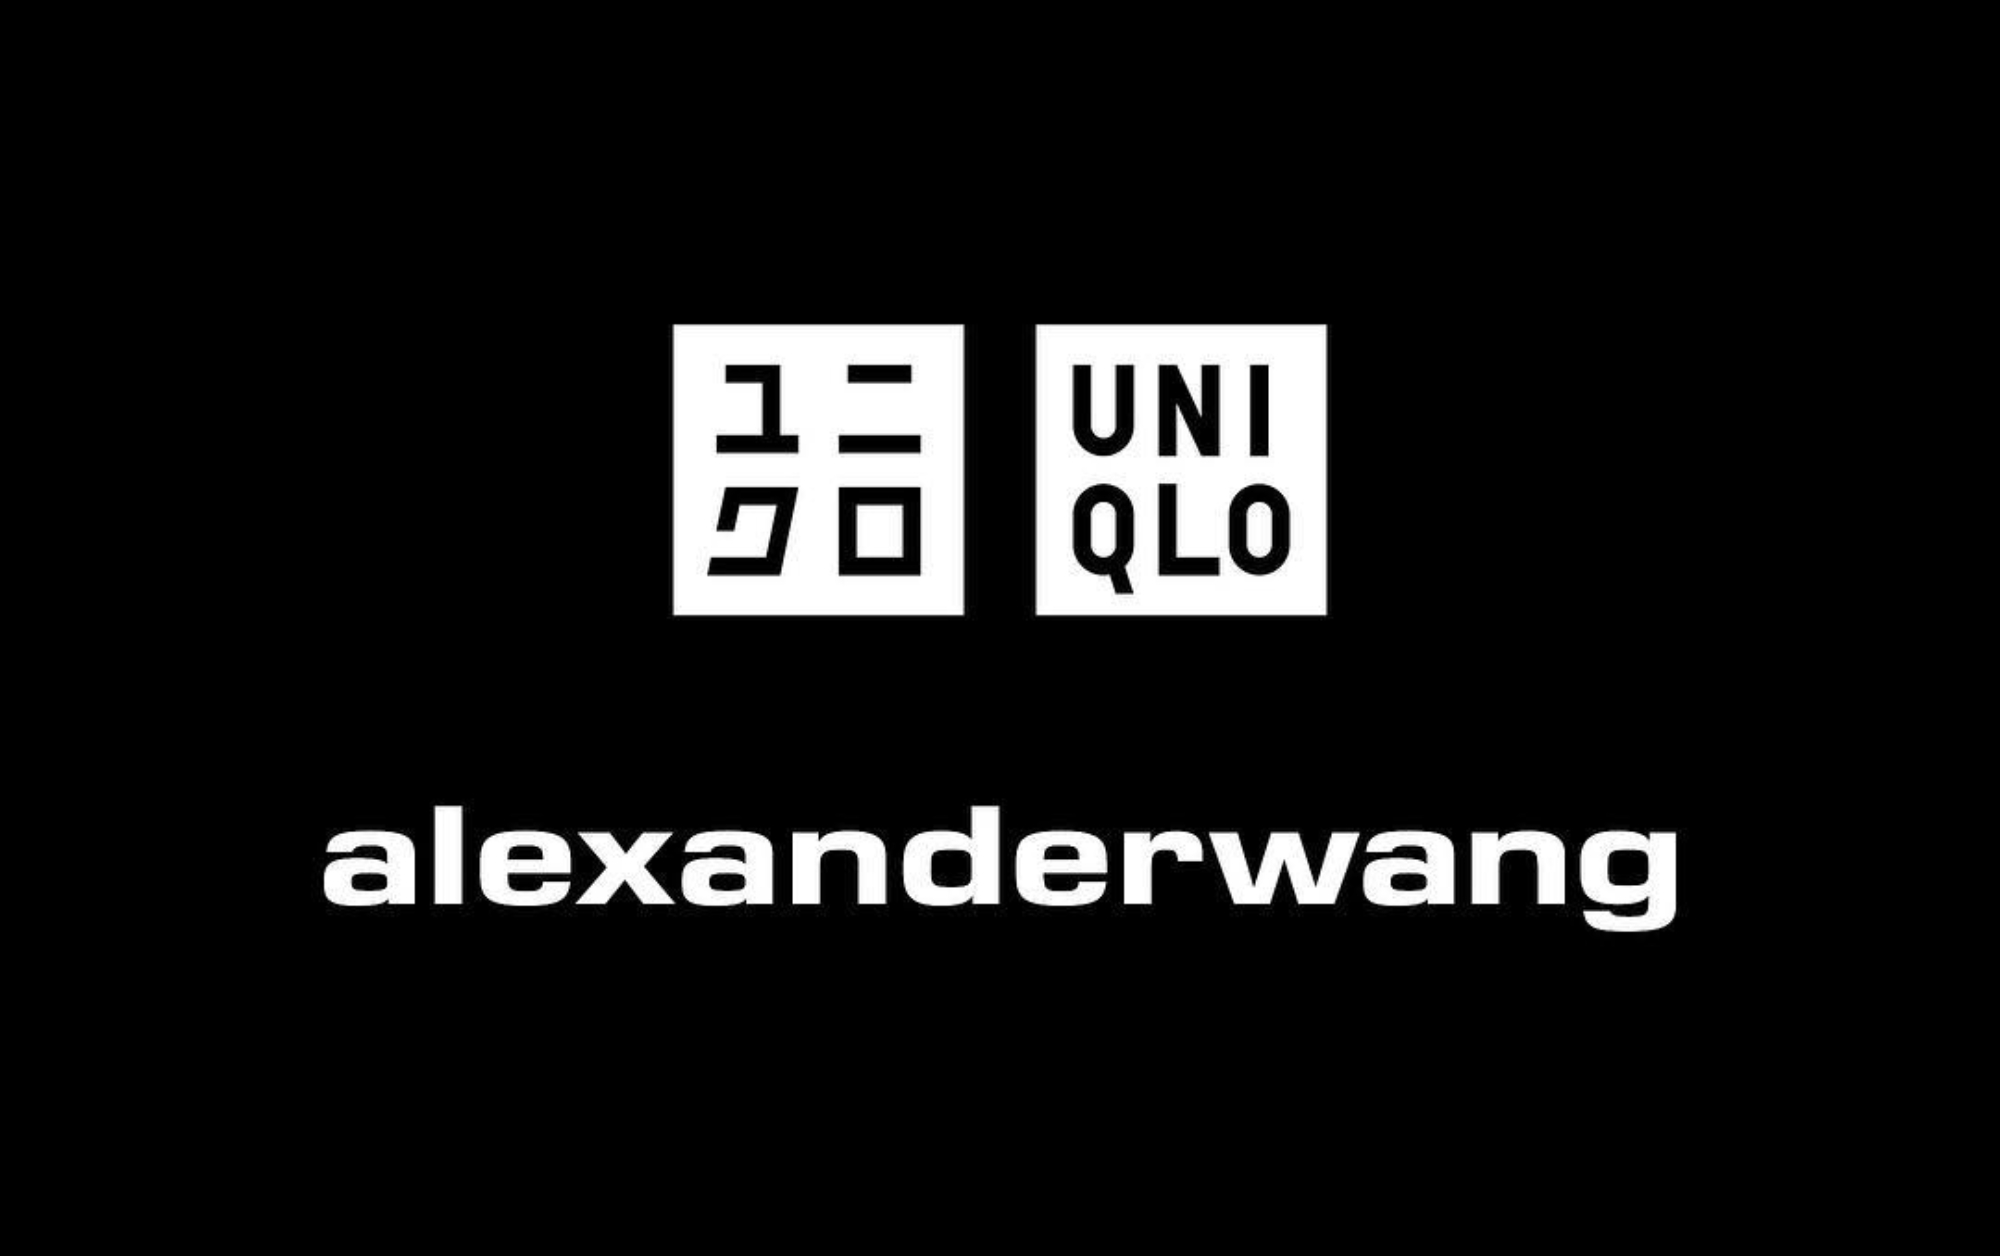 The Alexander Wang & Uniqlo Collection Everyone's Talking About